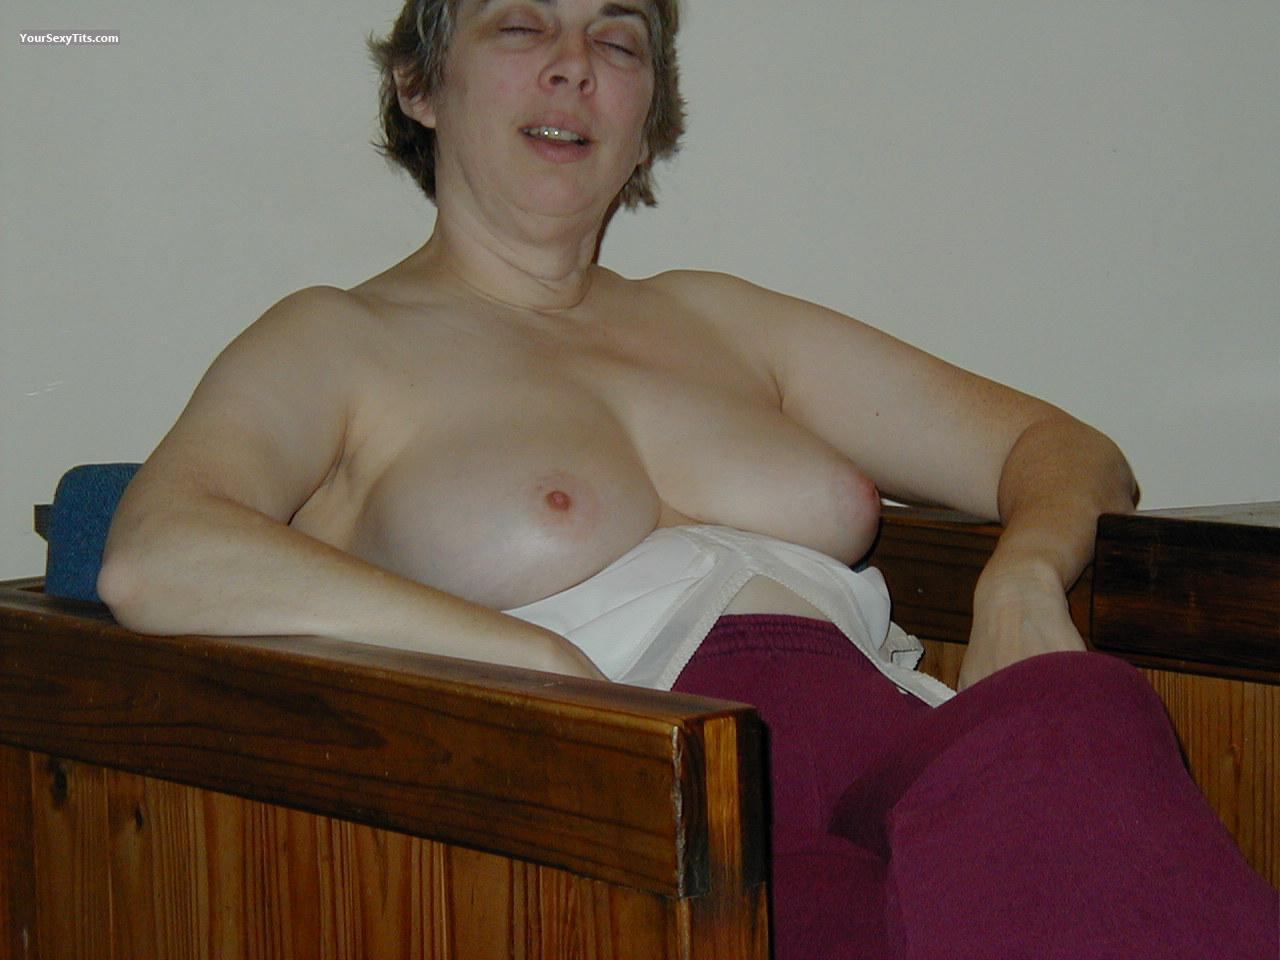 Tit Flash: Medium Tits - Georgie B from United States